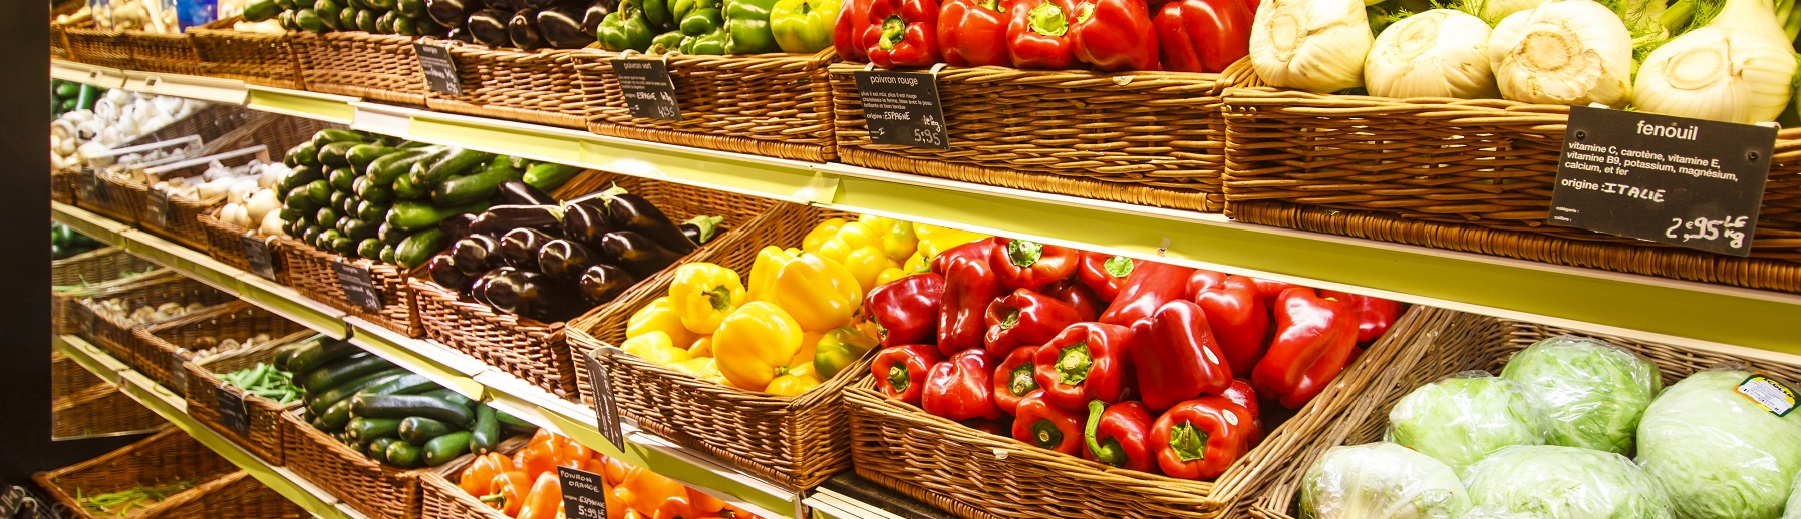 Many types of fresh produce in baskets on shelves